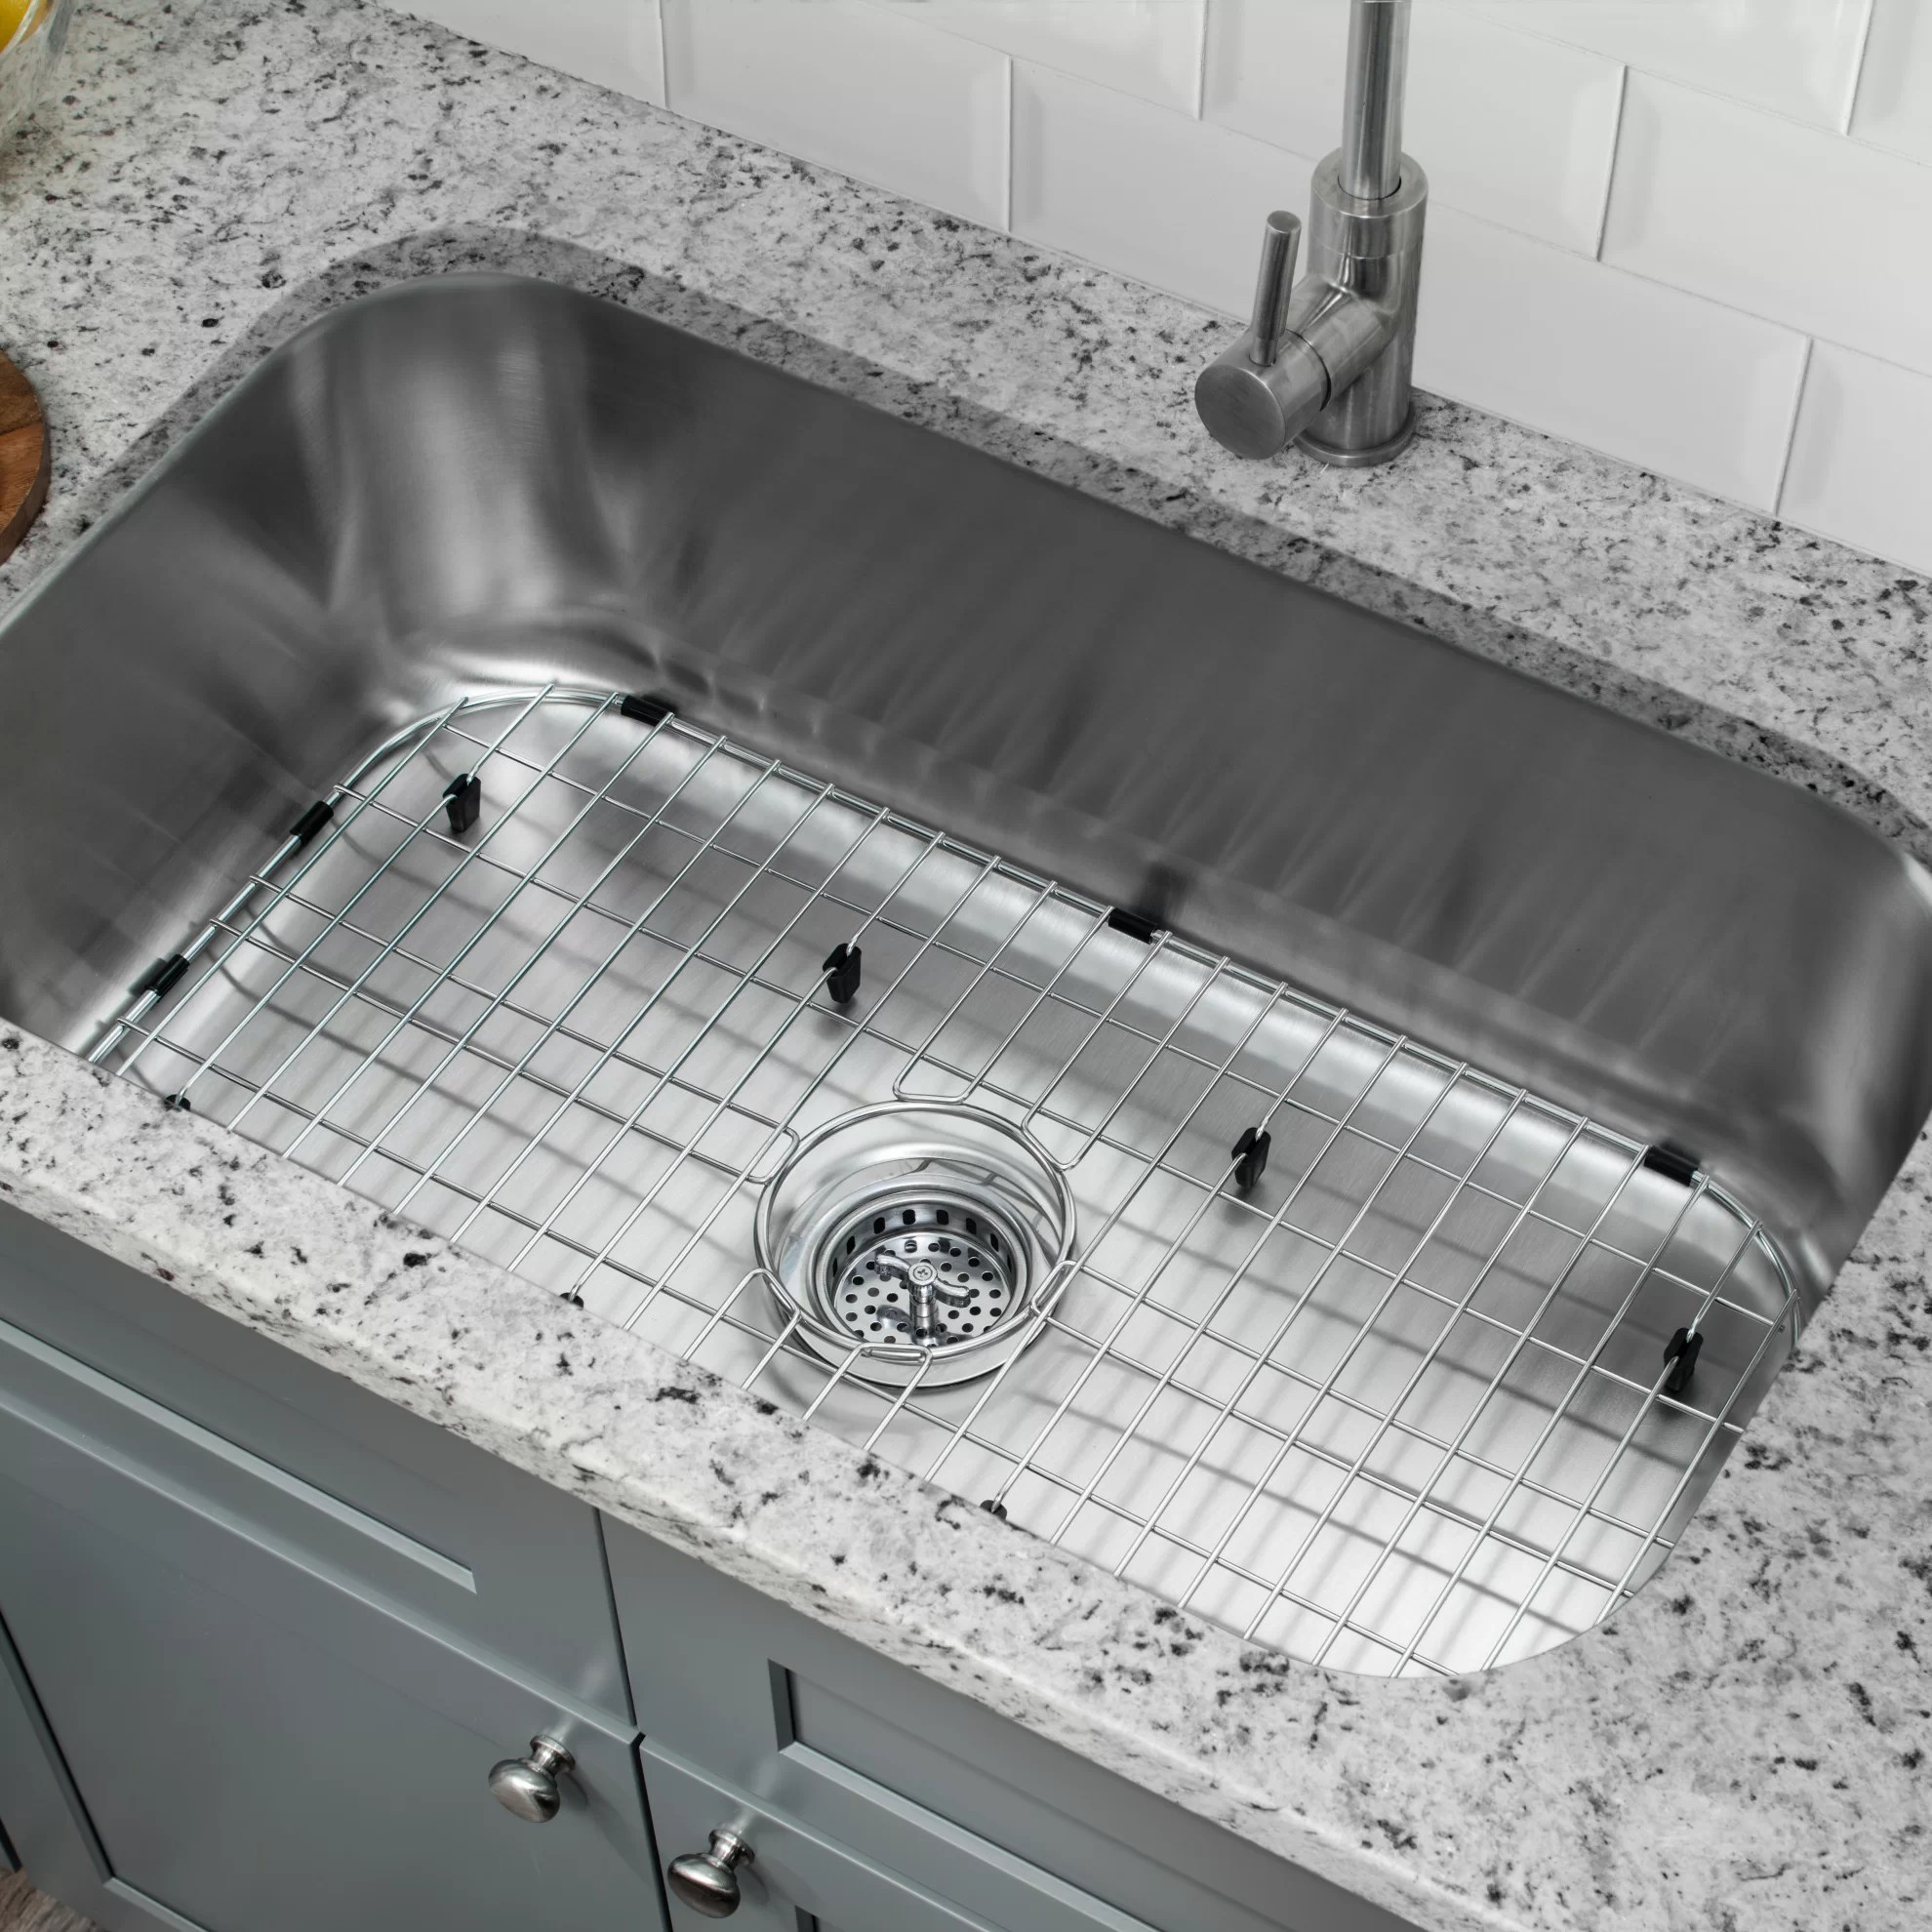 9 l x 30 w undermount kitchen sink with sink grid and drain assembly